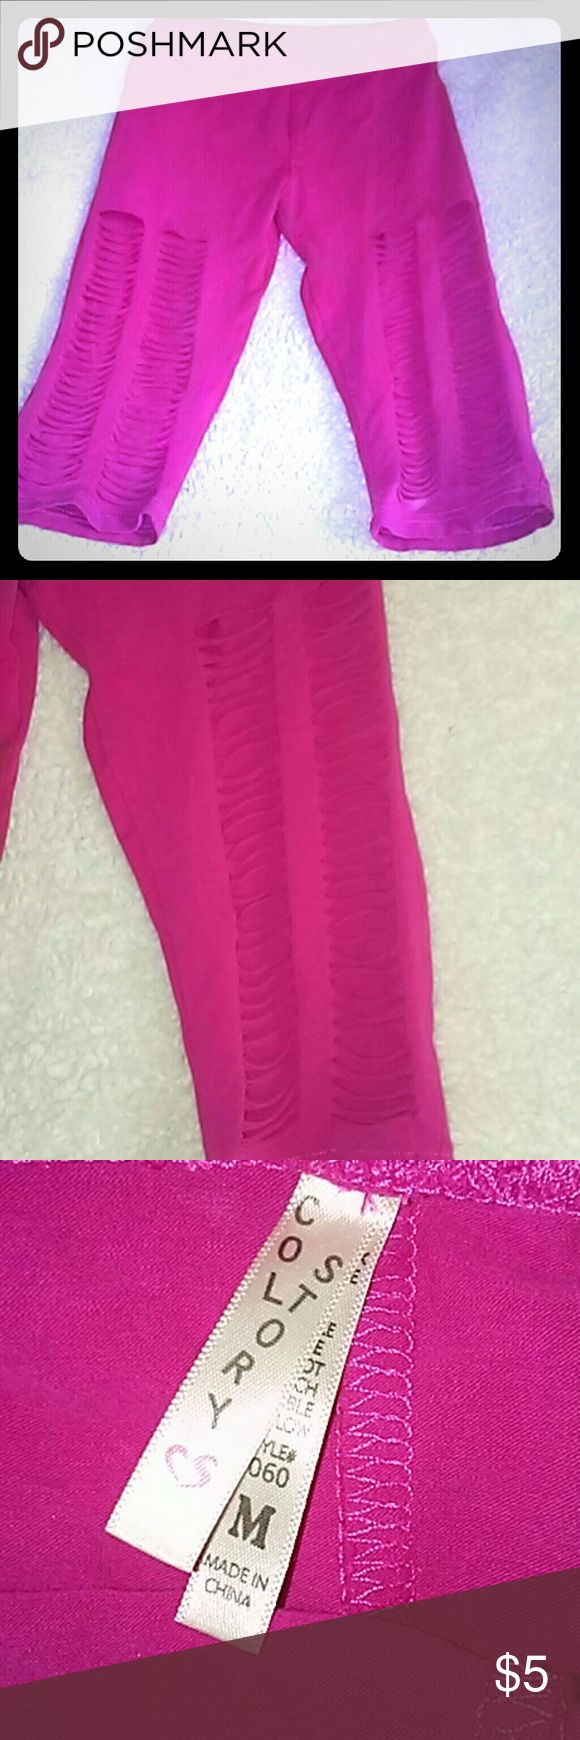 Hot pink ripped and torn pocketed capri legging Hot pink ripped and torn pocketed legging capri style and cute with a dress Pants Leggings